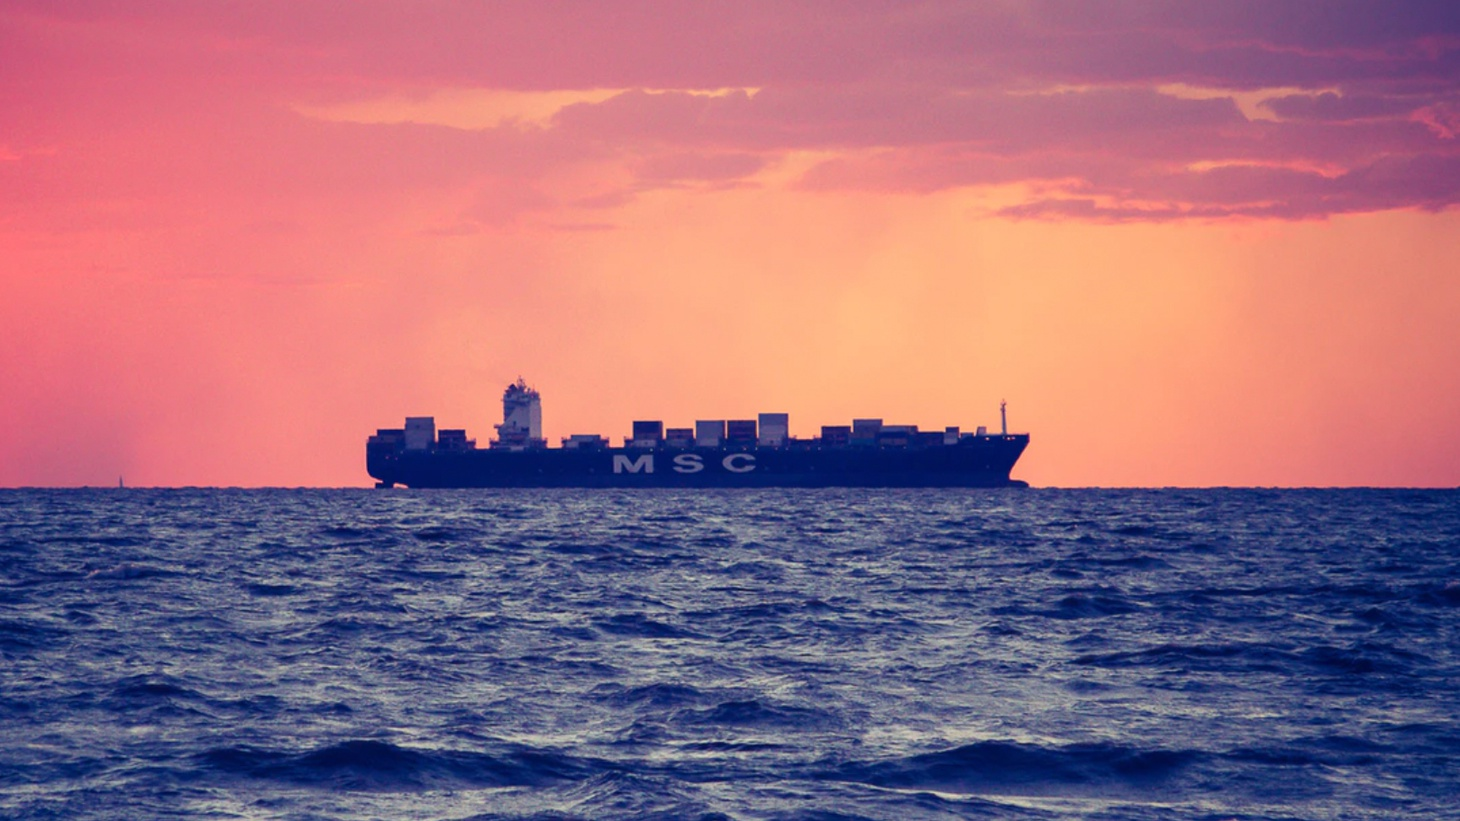 Massive container ships asked to reduce speeds in the Santa Barbara Channel.